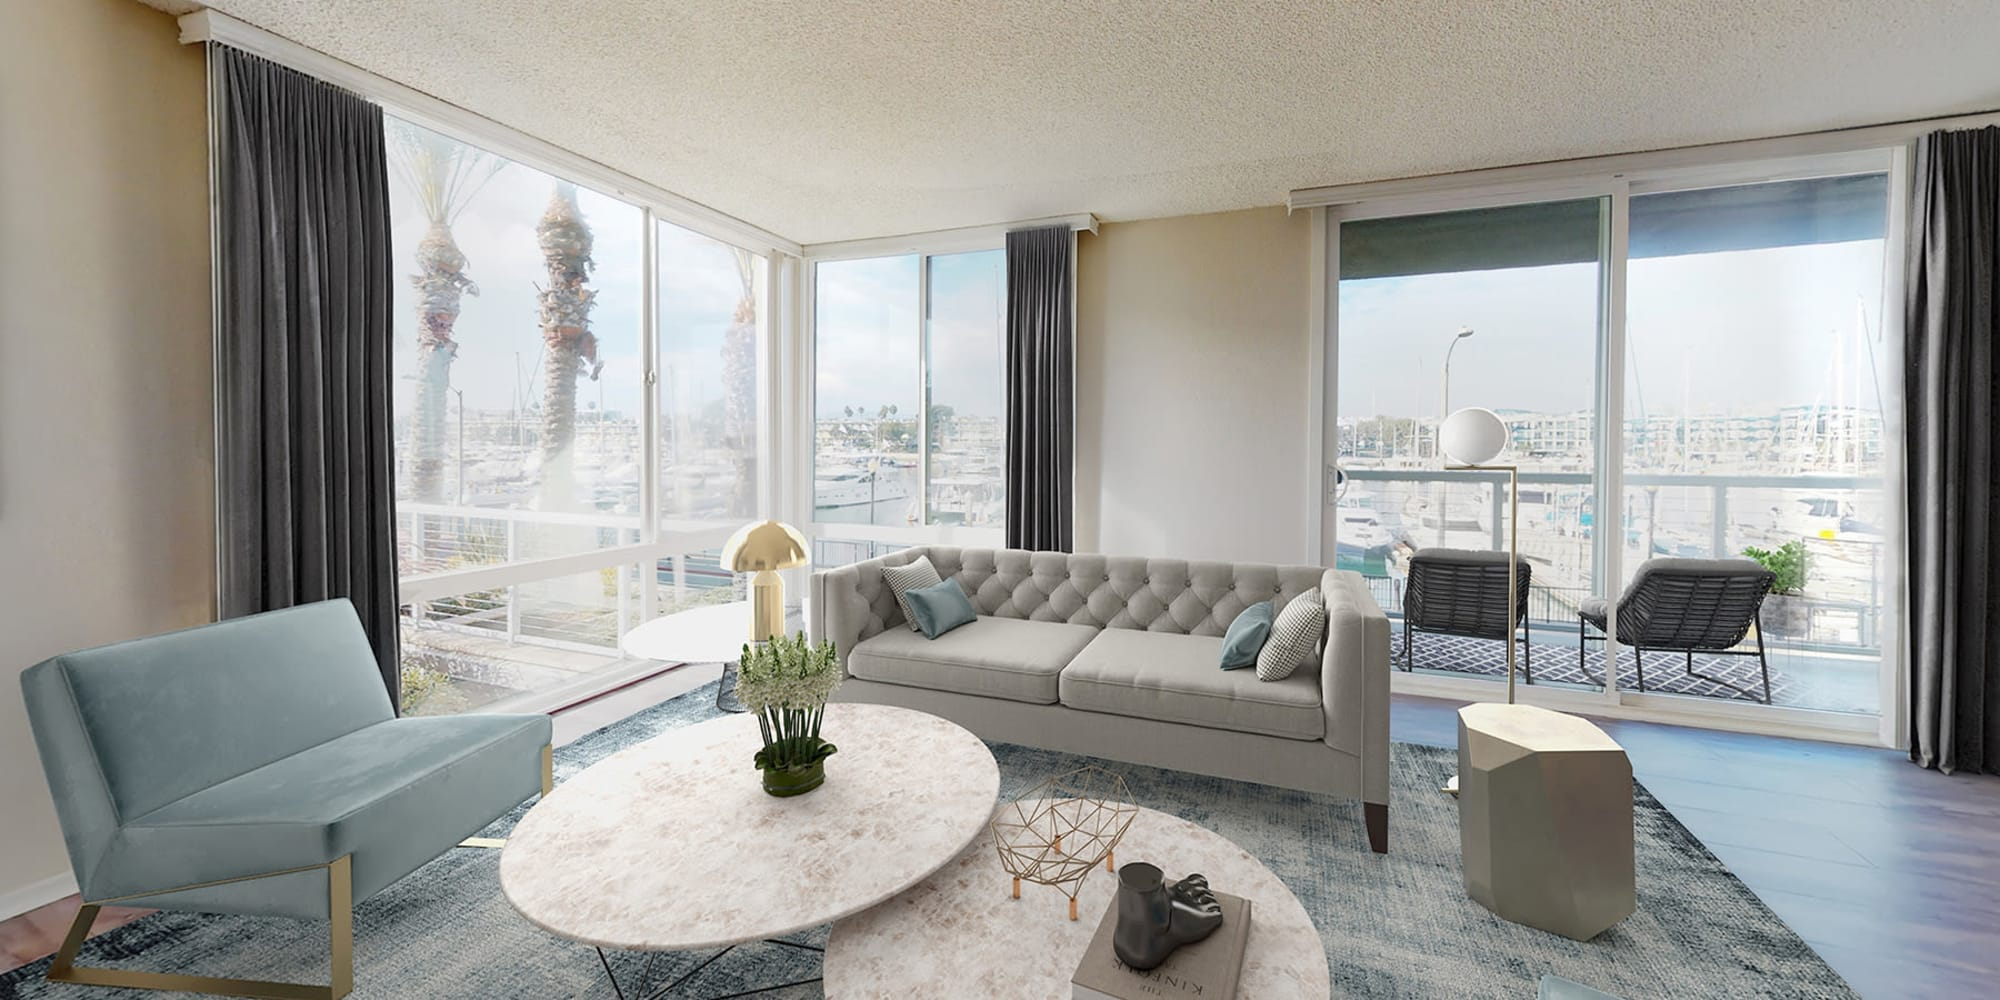 Well-furnished open-concept model home with balcony and views of the marina at Waters Edge at Marina Harbor in Marina Del Rey, California